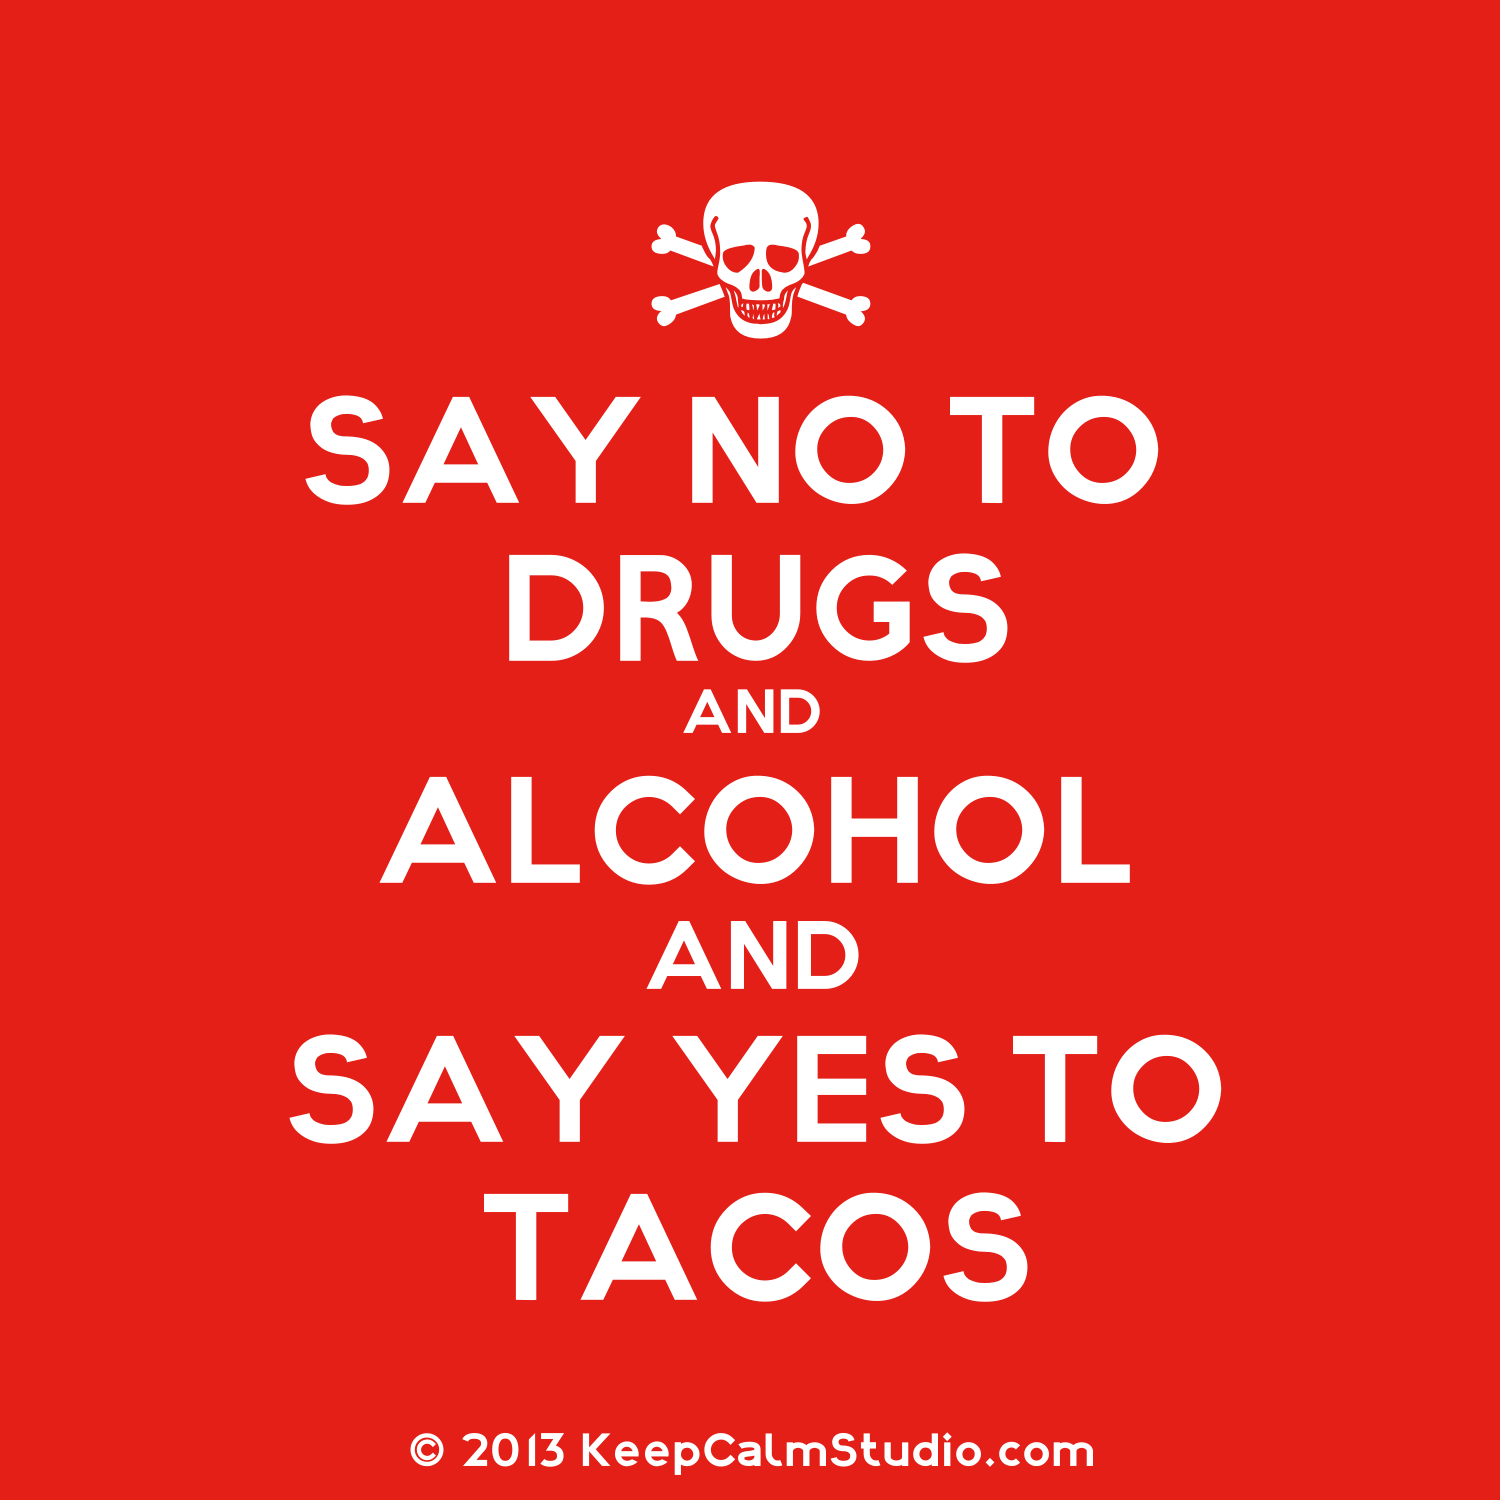 Quotes About Drugs Beauteous Just Say No To Drugs Slogans  Say No To Drugs And Alcohol And Say . Review